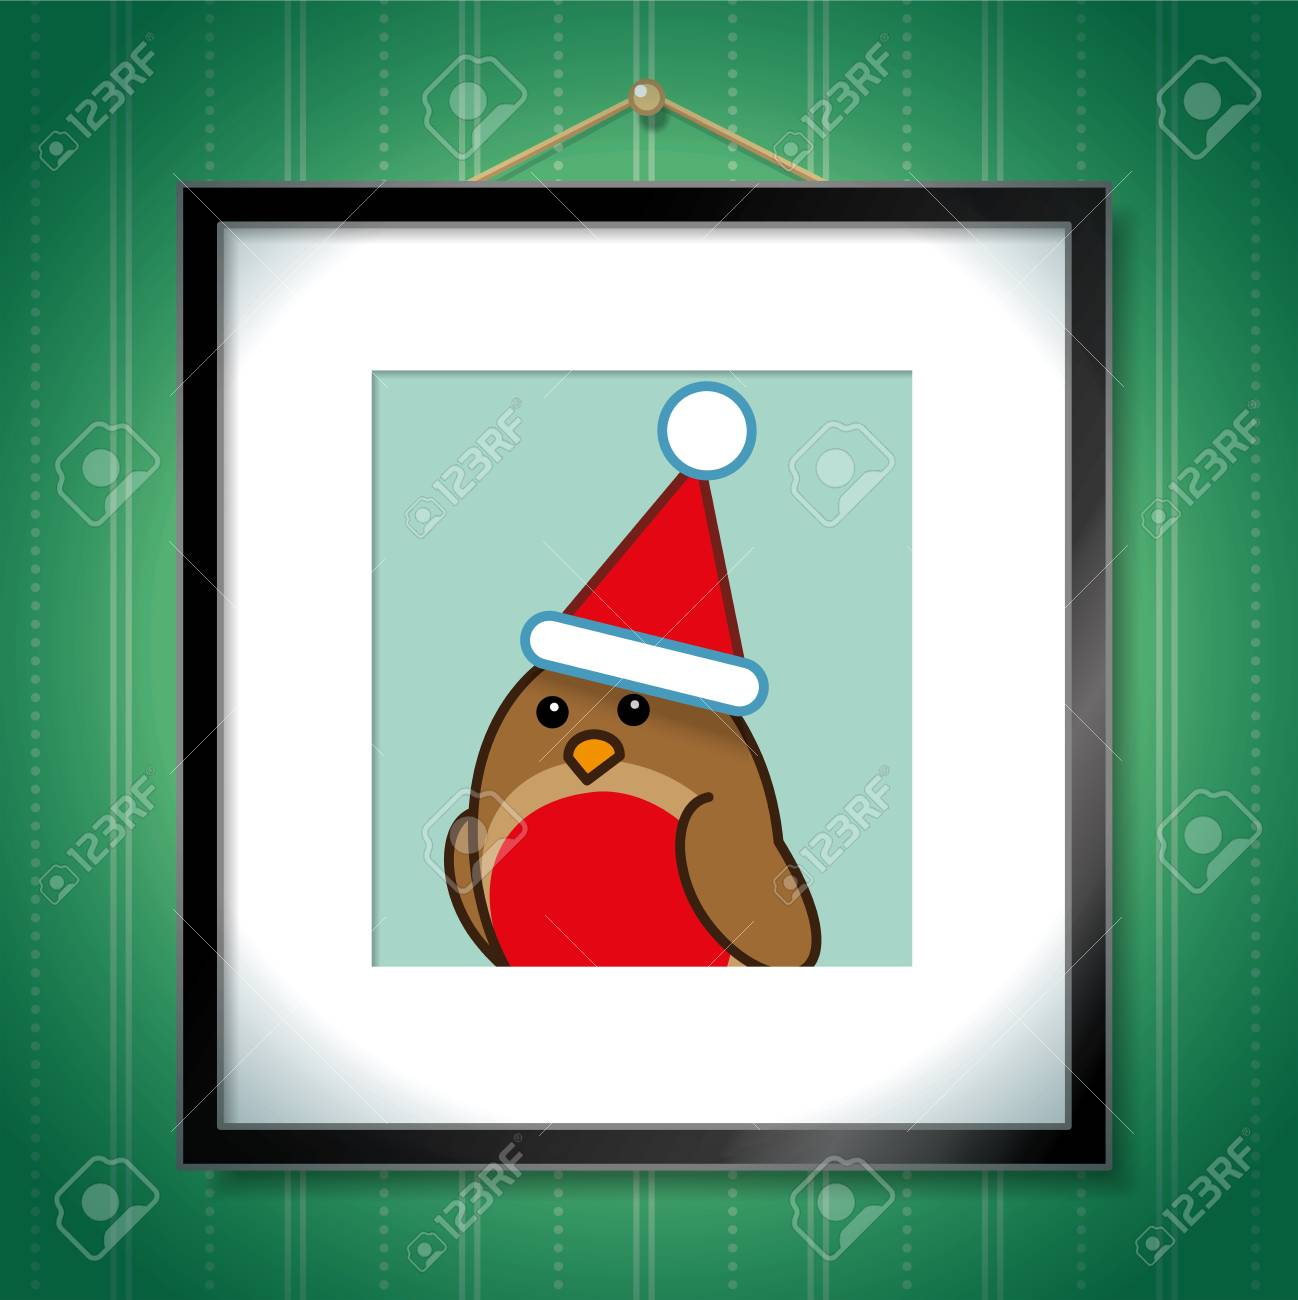 6ad600e7a2b Single Robin Red Breast wearing a Christmas Santa Hat in Picture Frame  Hanging on Green Wallpaper